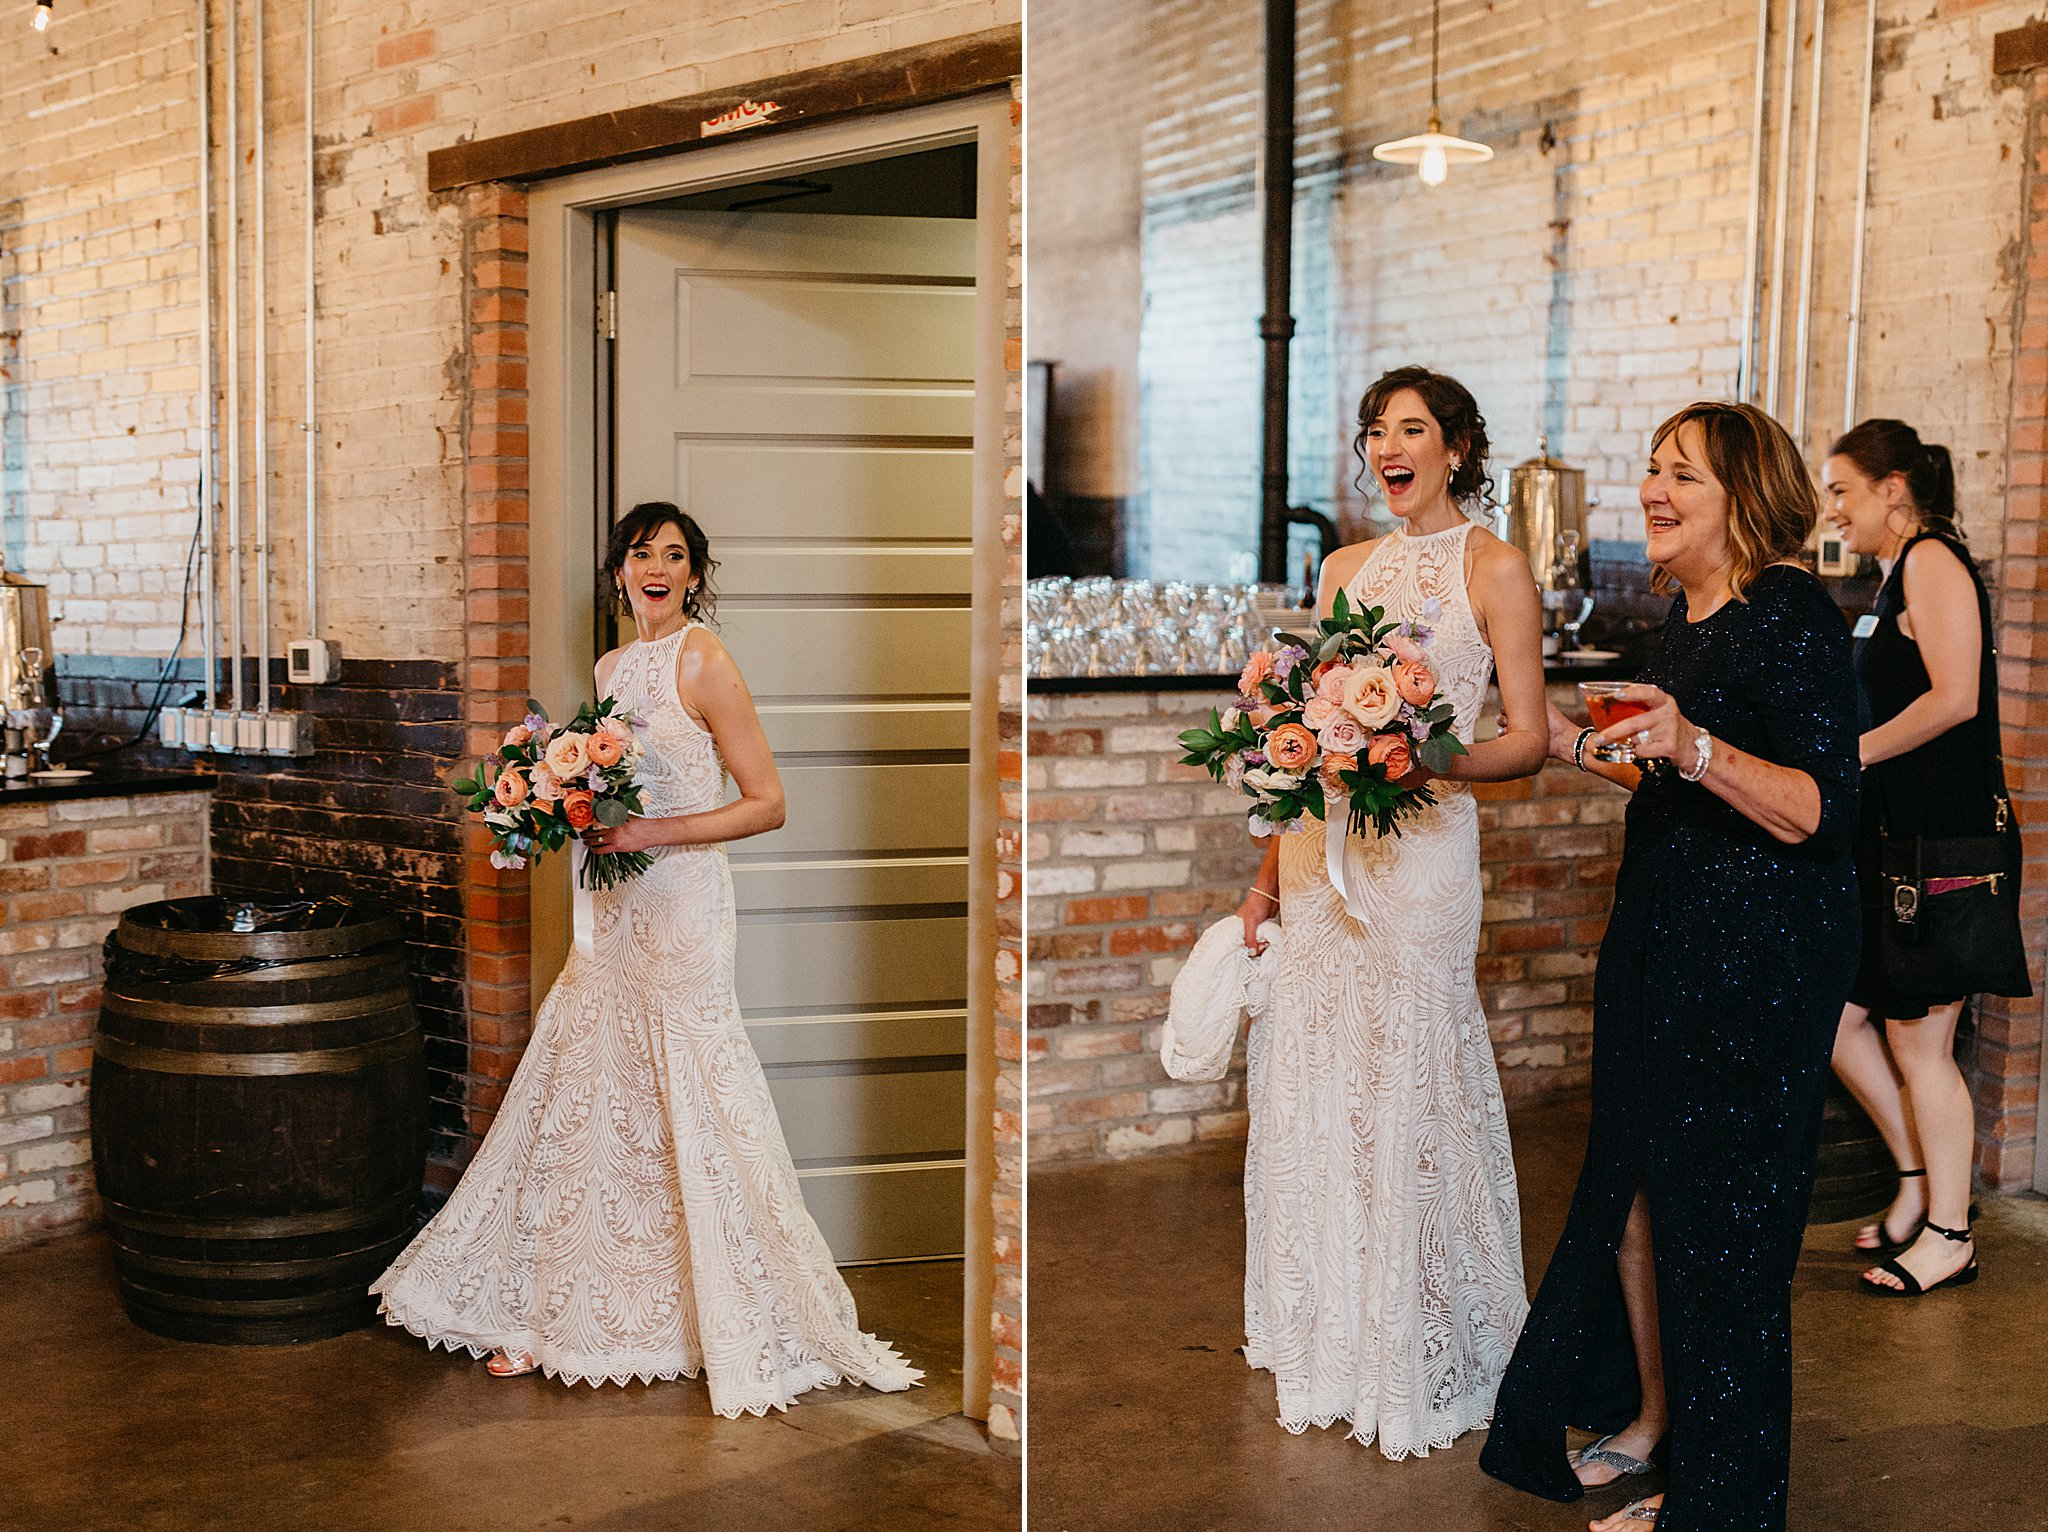 Wilderlove Co_Wedding Photographer_Industrial Wedding_Jewish Wedding_Dallas Texas Wedding_Brake & Clutch Warehouse_North Texas Photographer_0070.jpg